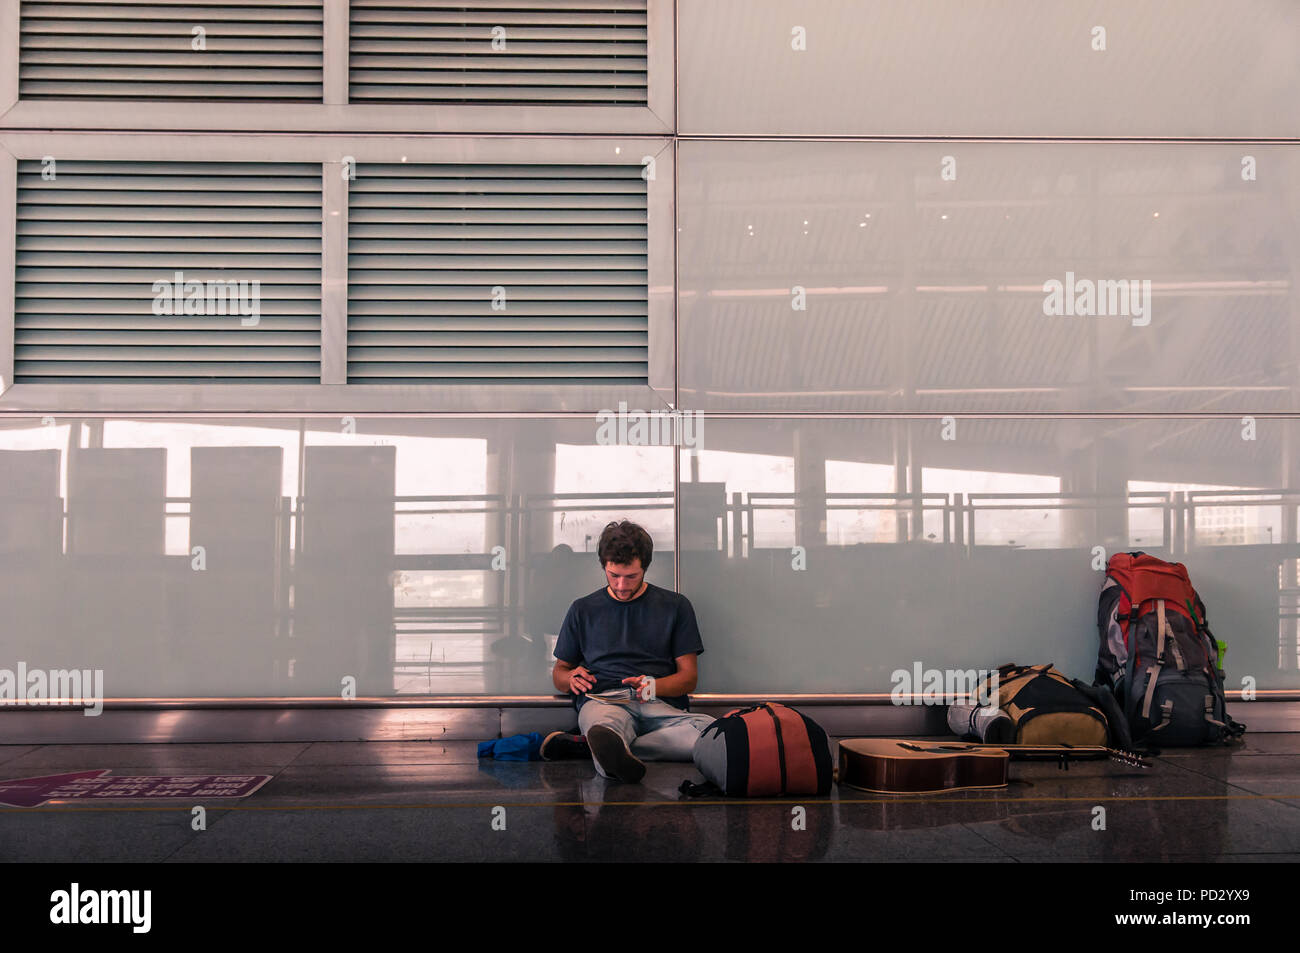 Traveller on airport floor, Guangzhou, Jiangxi, China - Stock Image